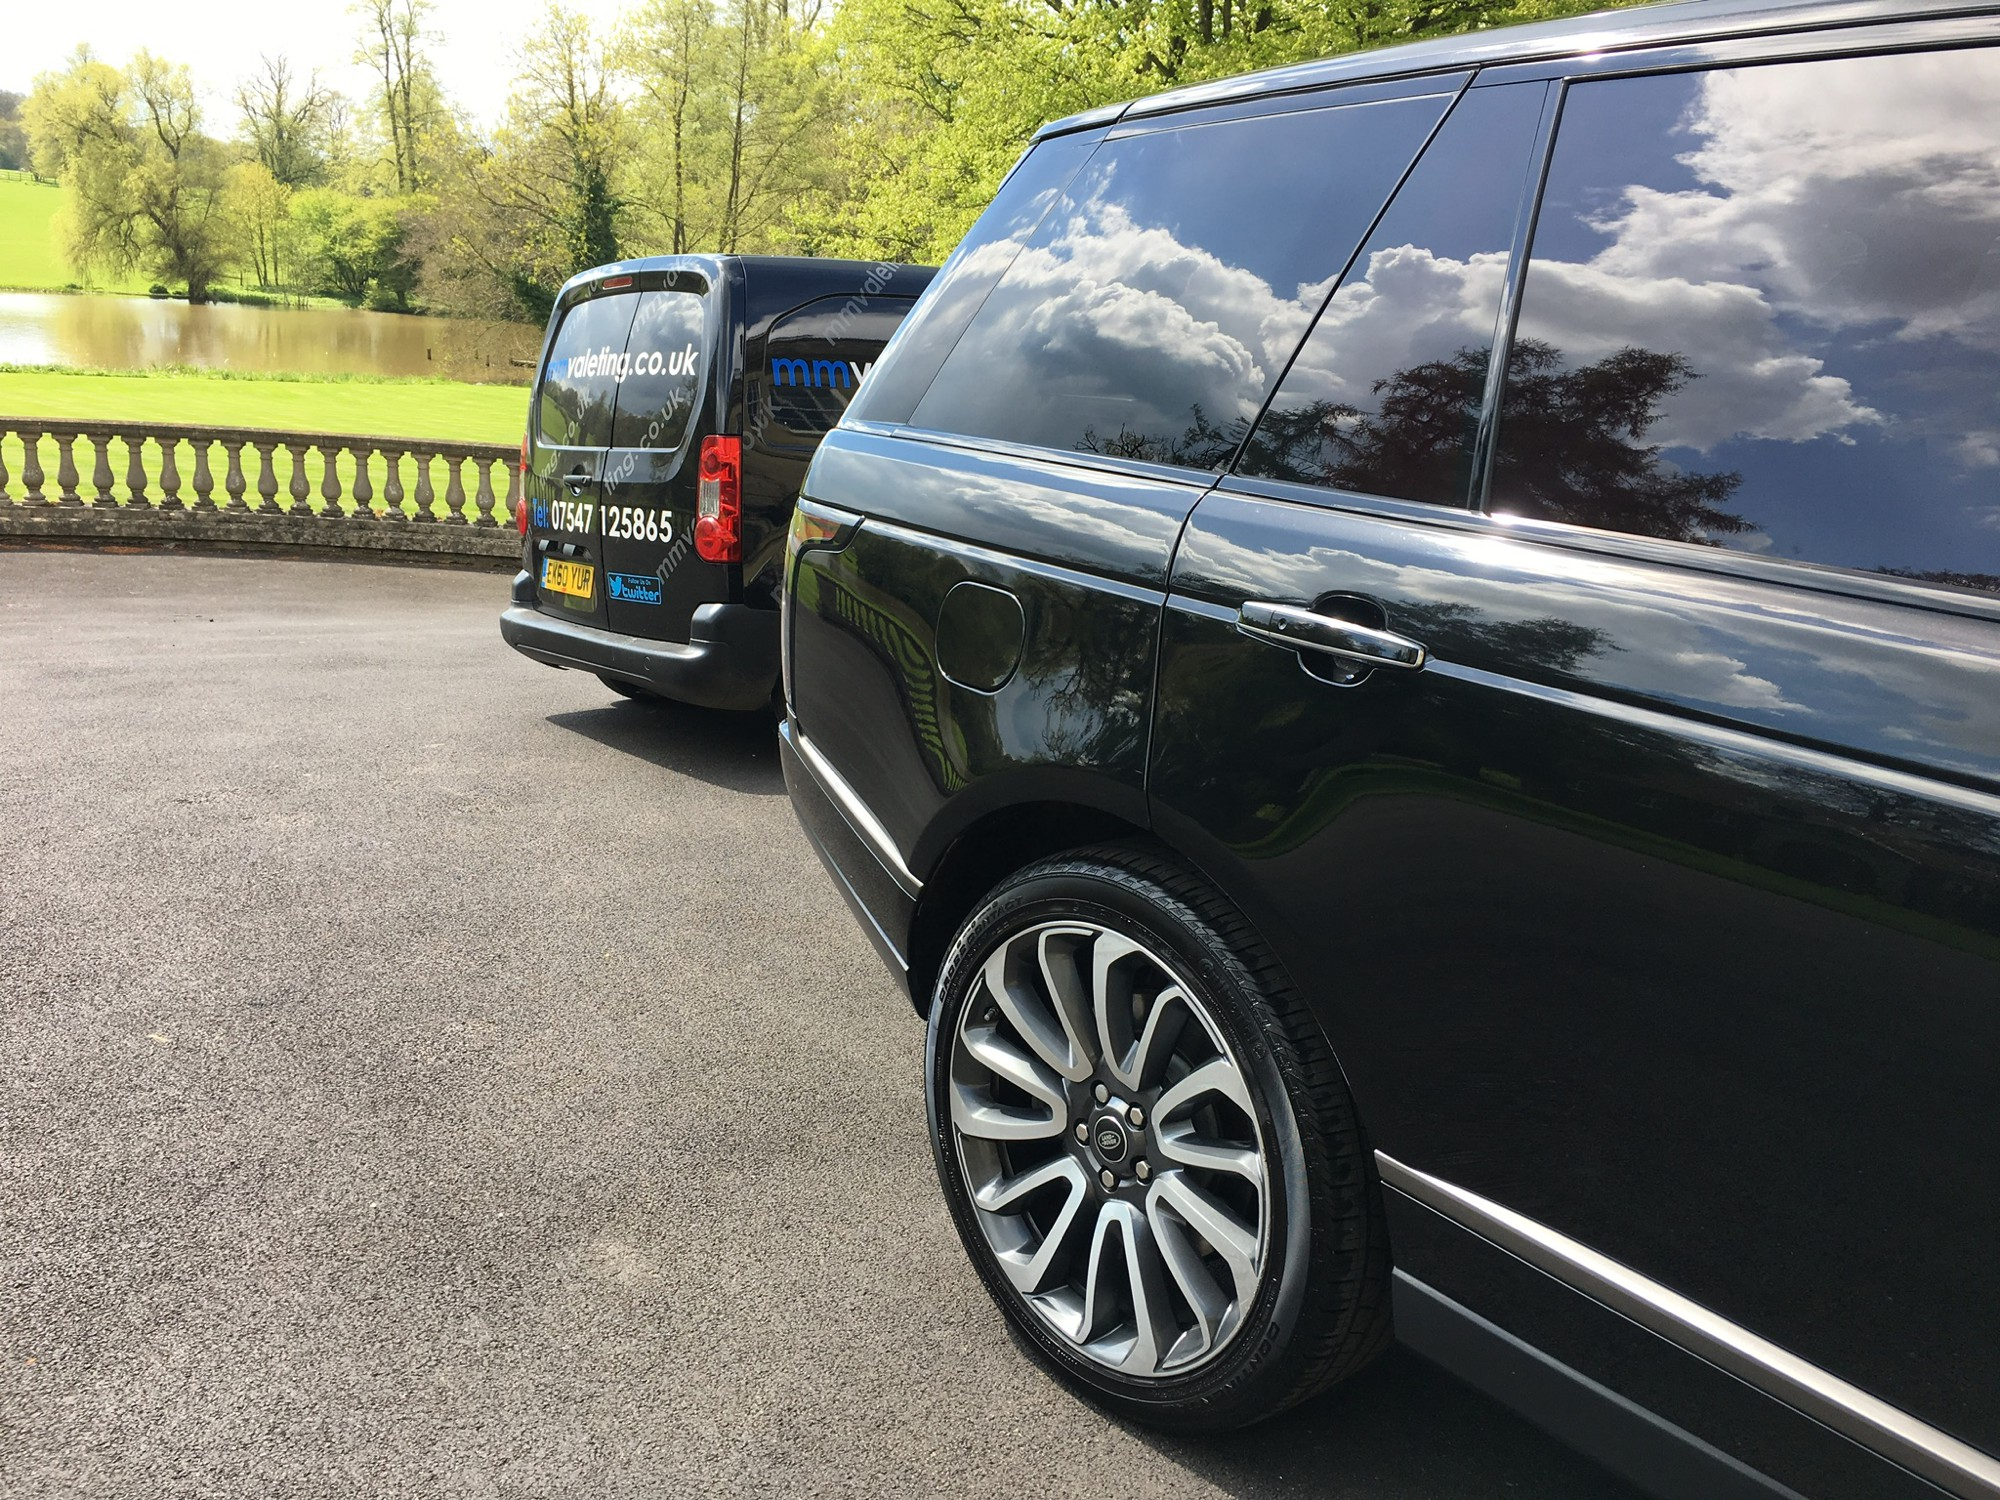 Machine polishing is an effective way of restoring your vehicles paintwork to its former glory. Contact mmvaleting about machine polishing your vehicle in Oxfordshire and Buckinhghamshire.